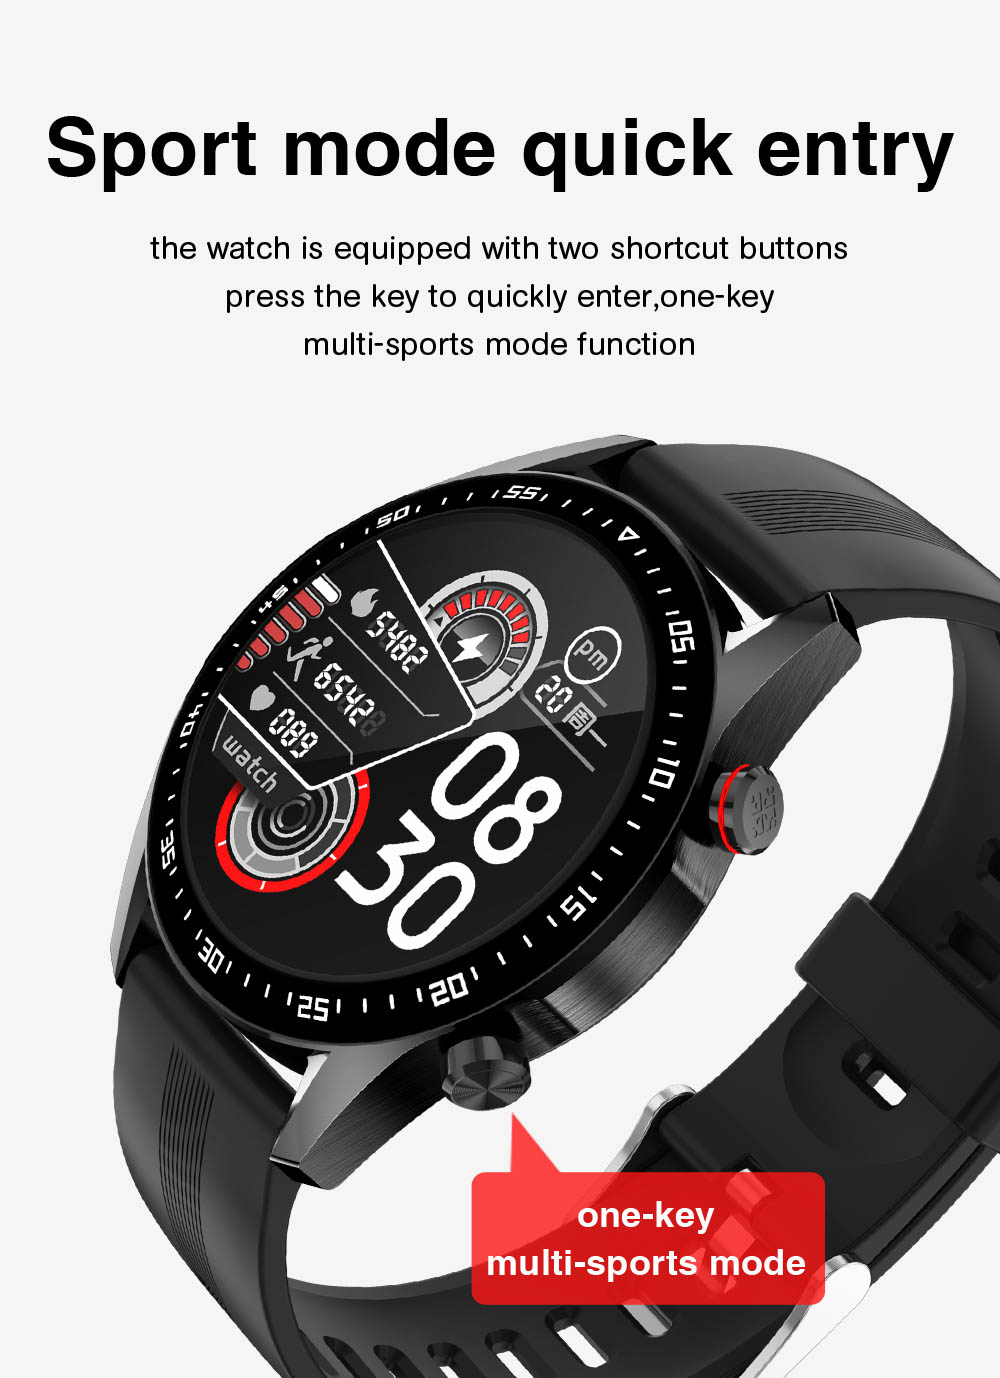 Hf00c714a0ba14c8193946bfa60c1d0823 E1-2 Smart Watch Men Bluetooth Call Custom Dial Full Touch Screen Waterproof Smartwatch For Android IOS Sports Fitness Tracker